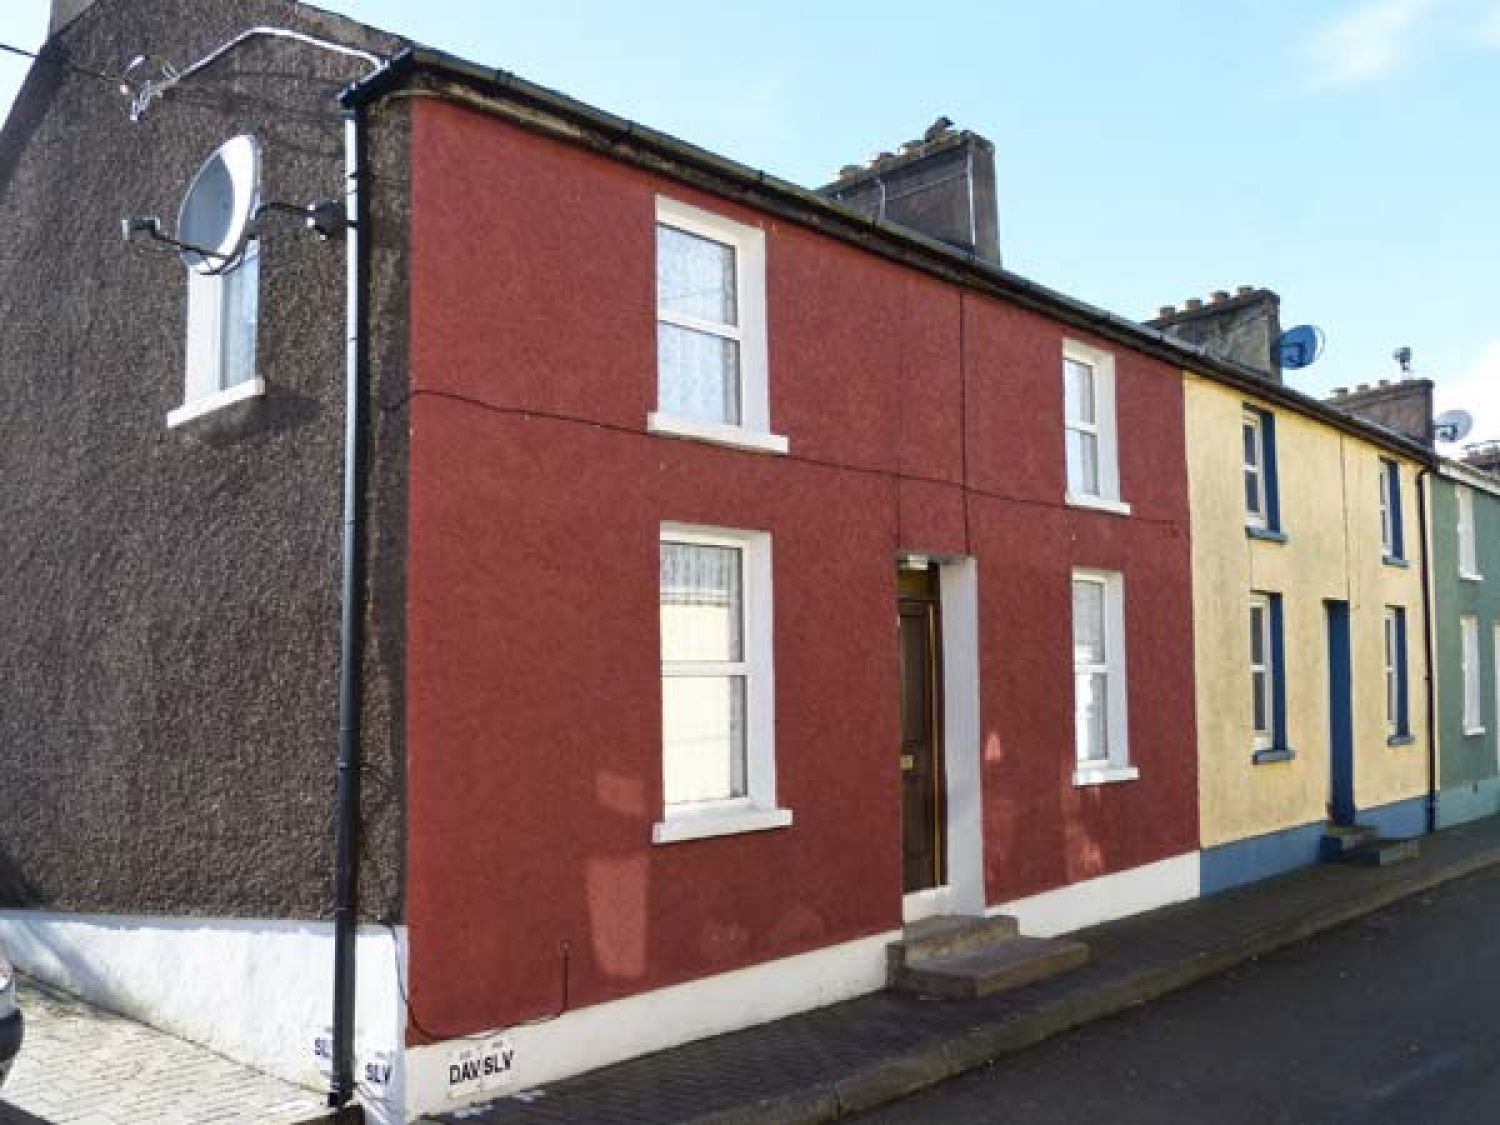 1 Higher O'Connell Street - Kinsale & County Cork - 905073 - photo 1